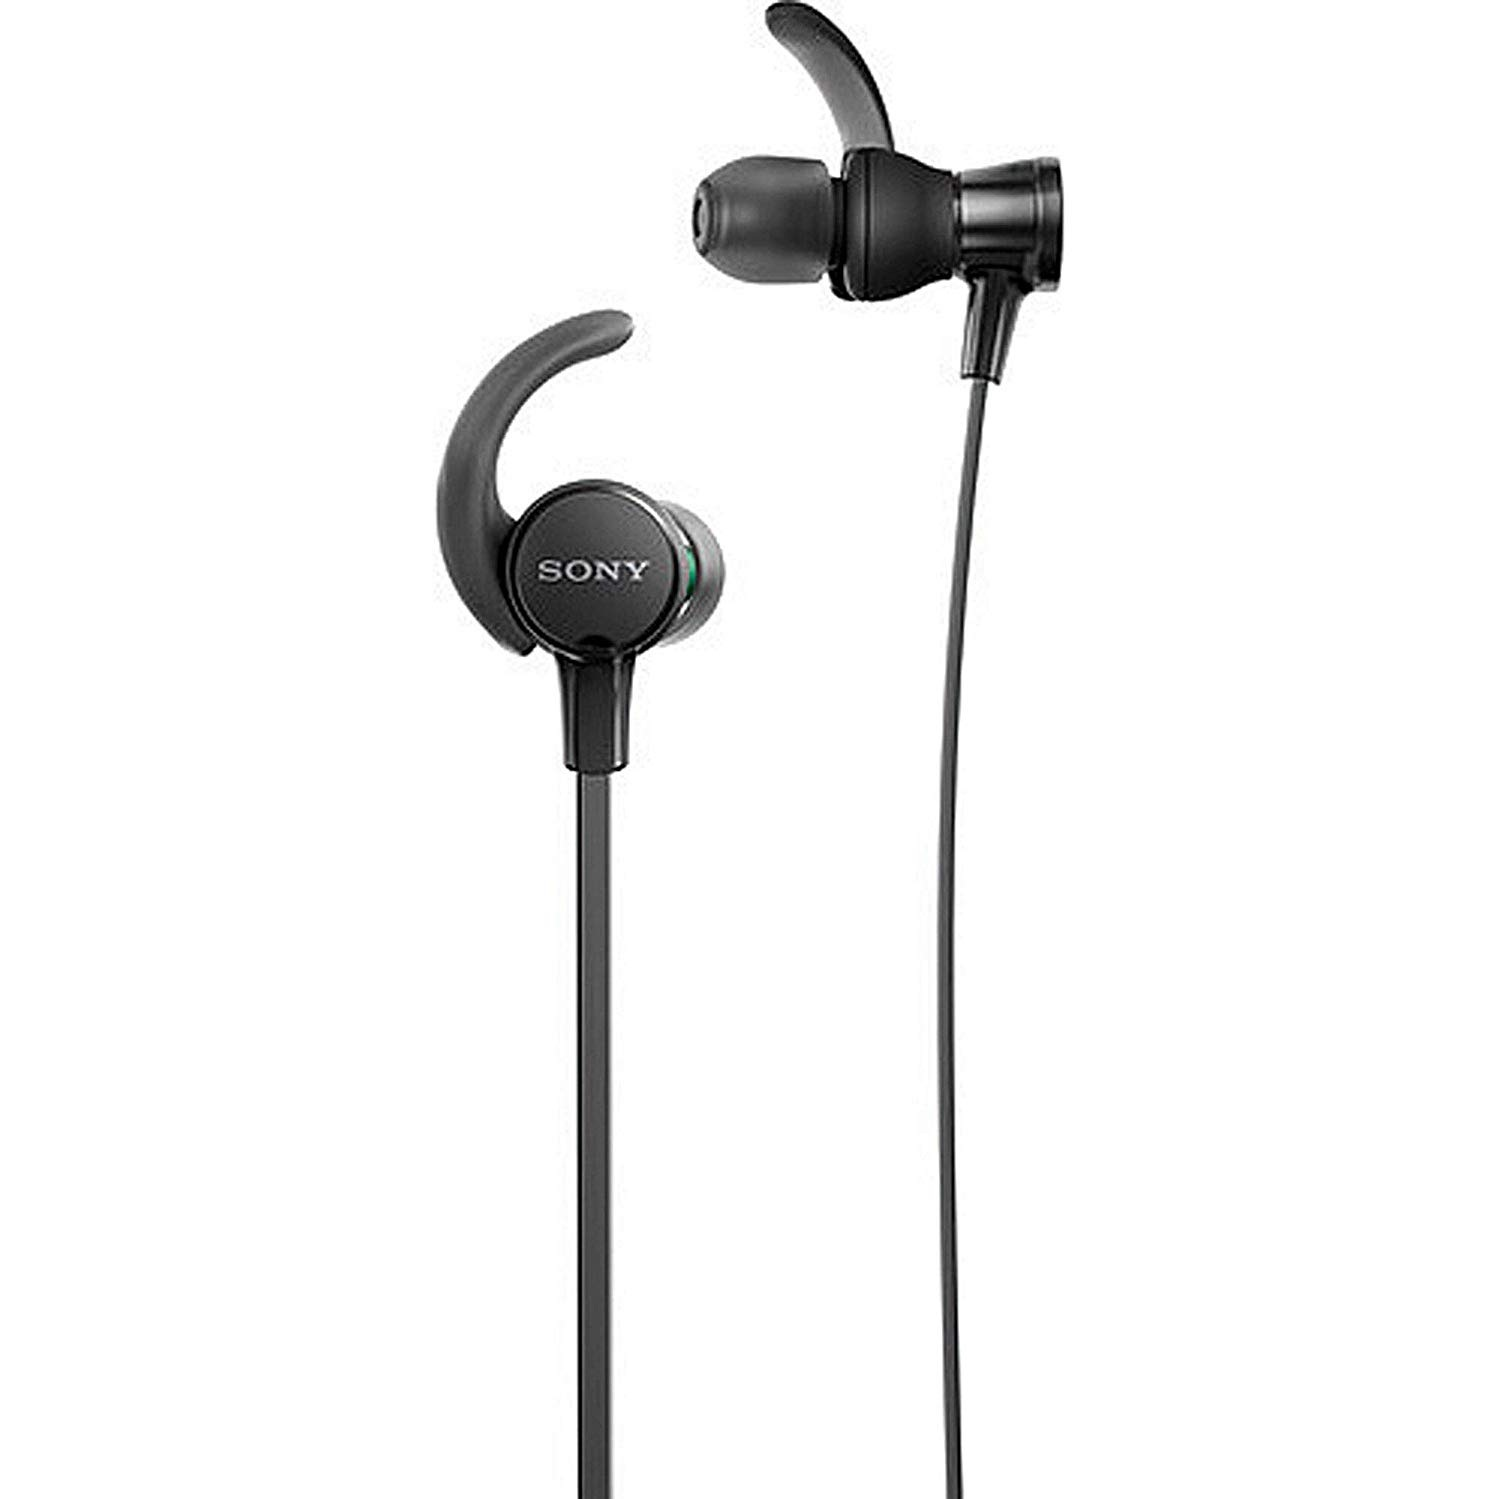 SONY BLUETOOTHEAR BUDS - I bought these as a cheaper alternative to version my daughter has - totally not expecting them to last that long… but I LOVE these ear buds and use them daily!